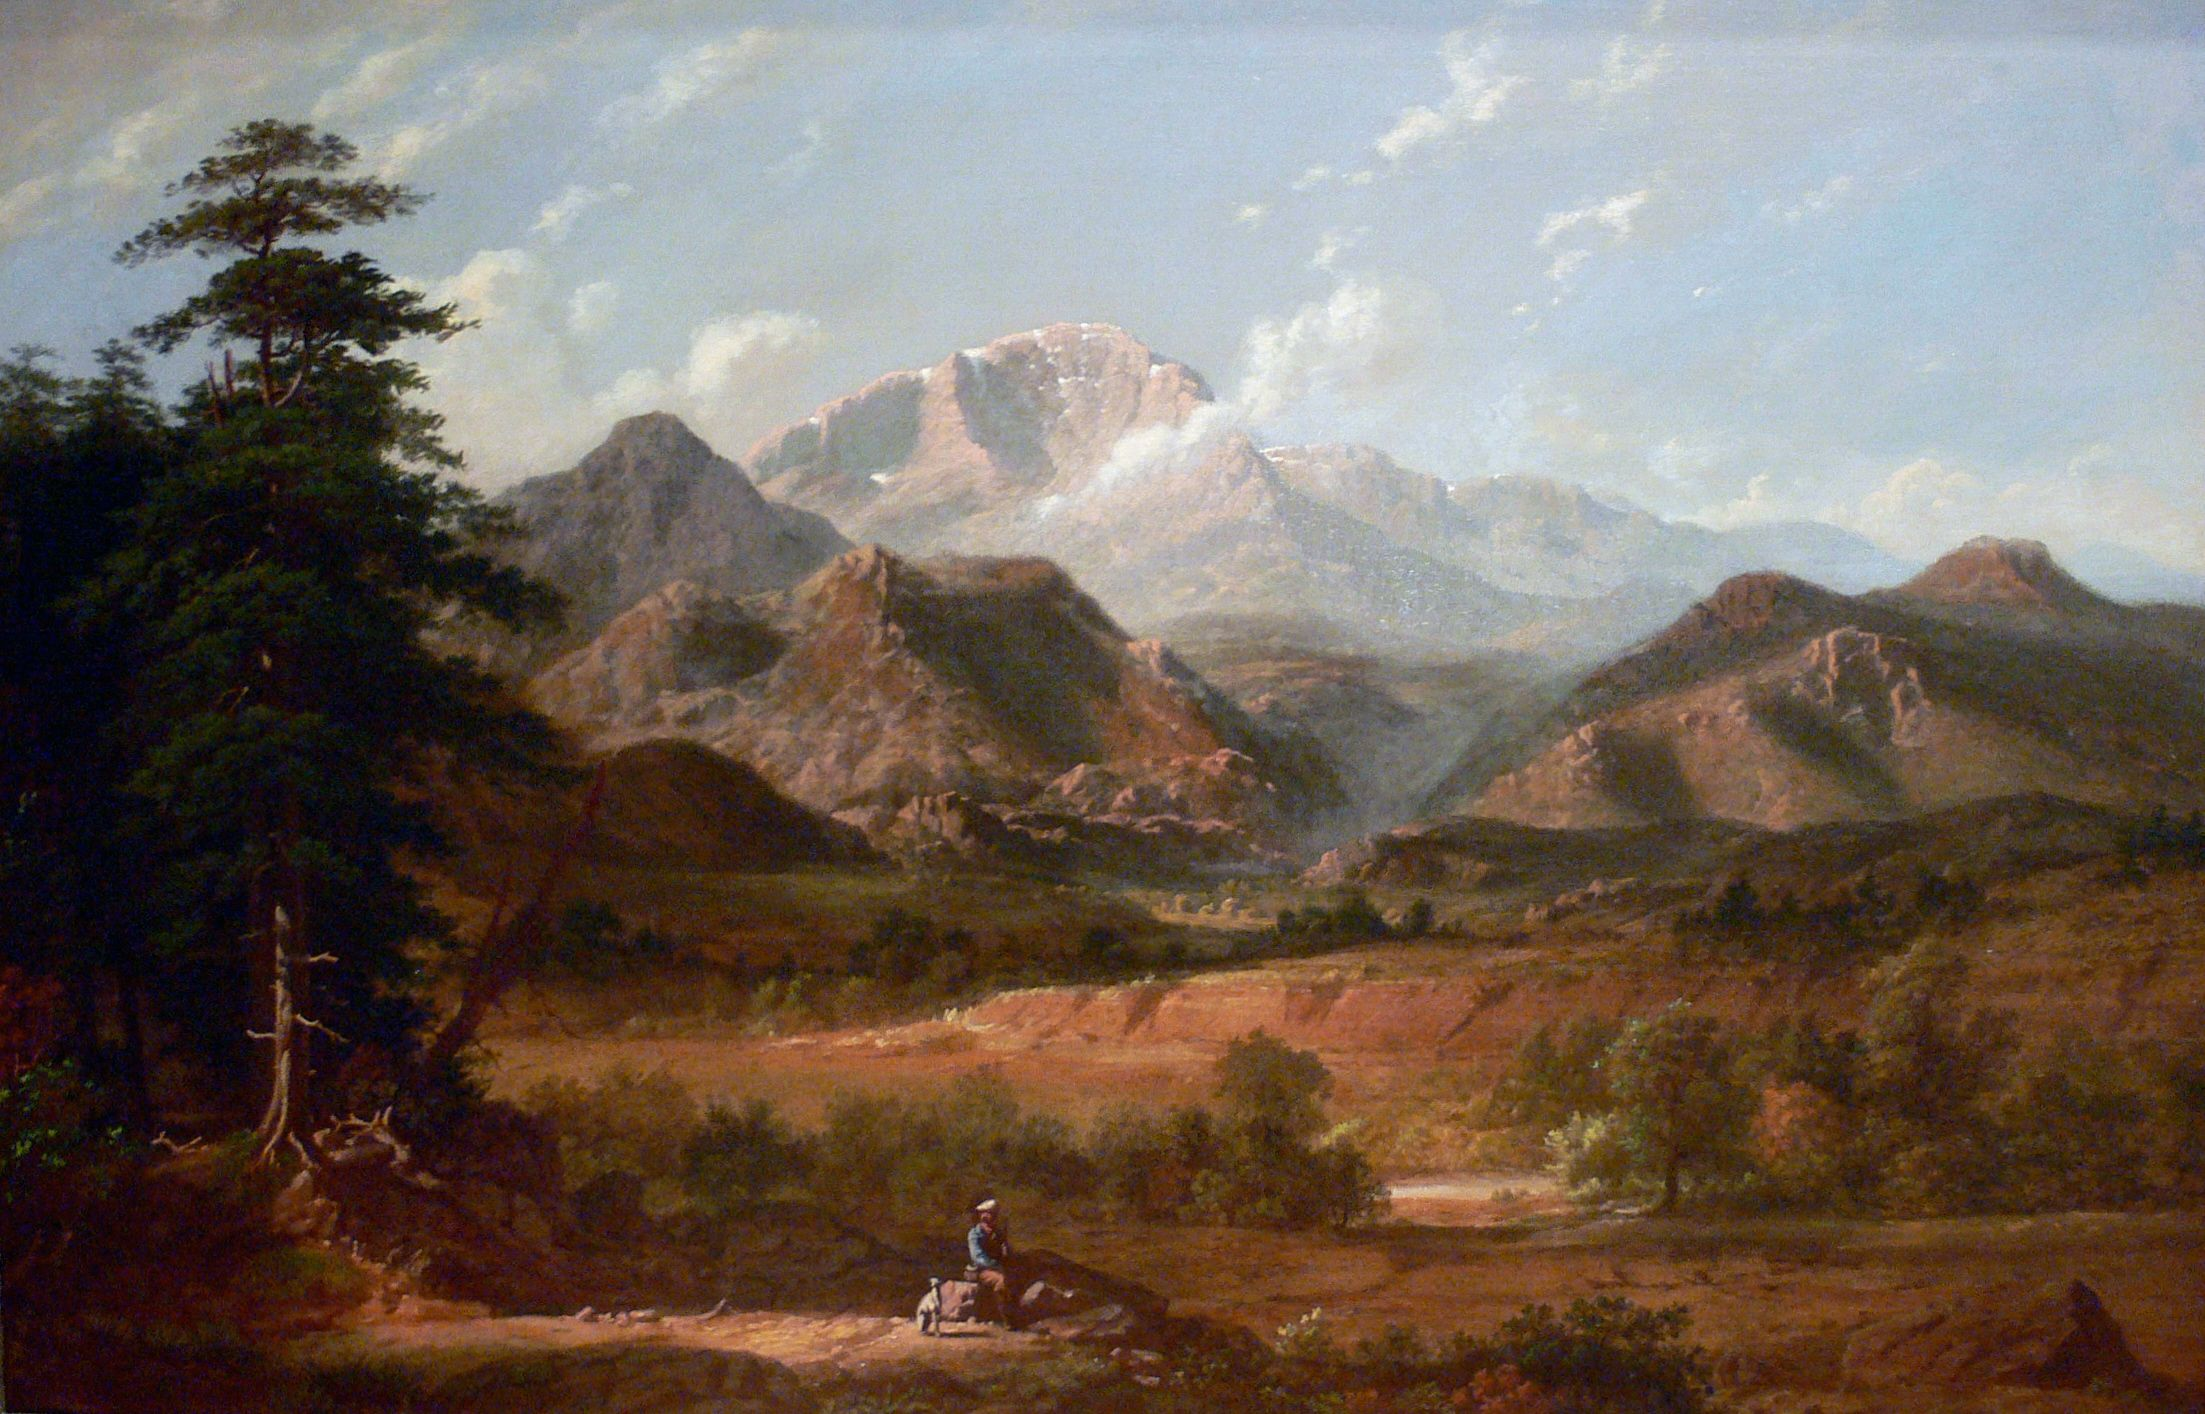 View of Pikes Peak - George Caleb Bingham